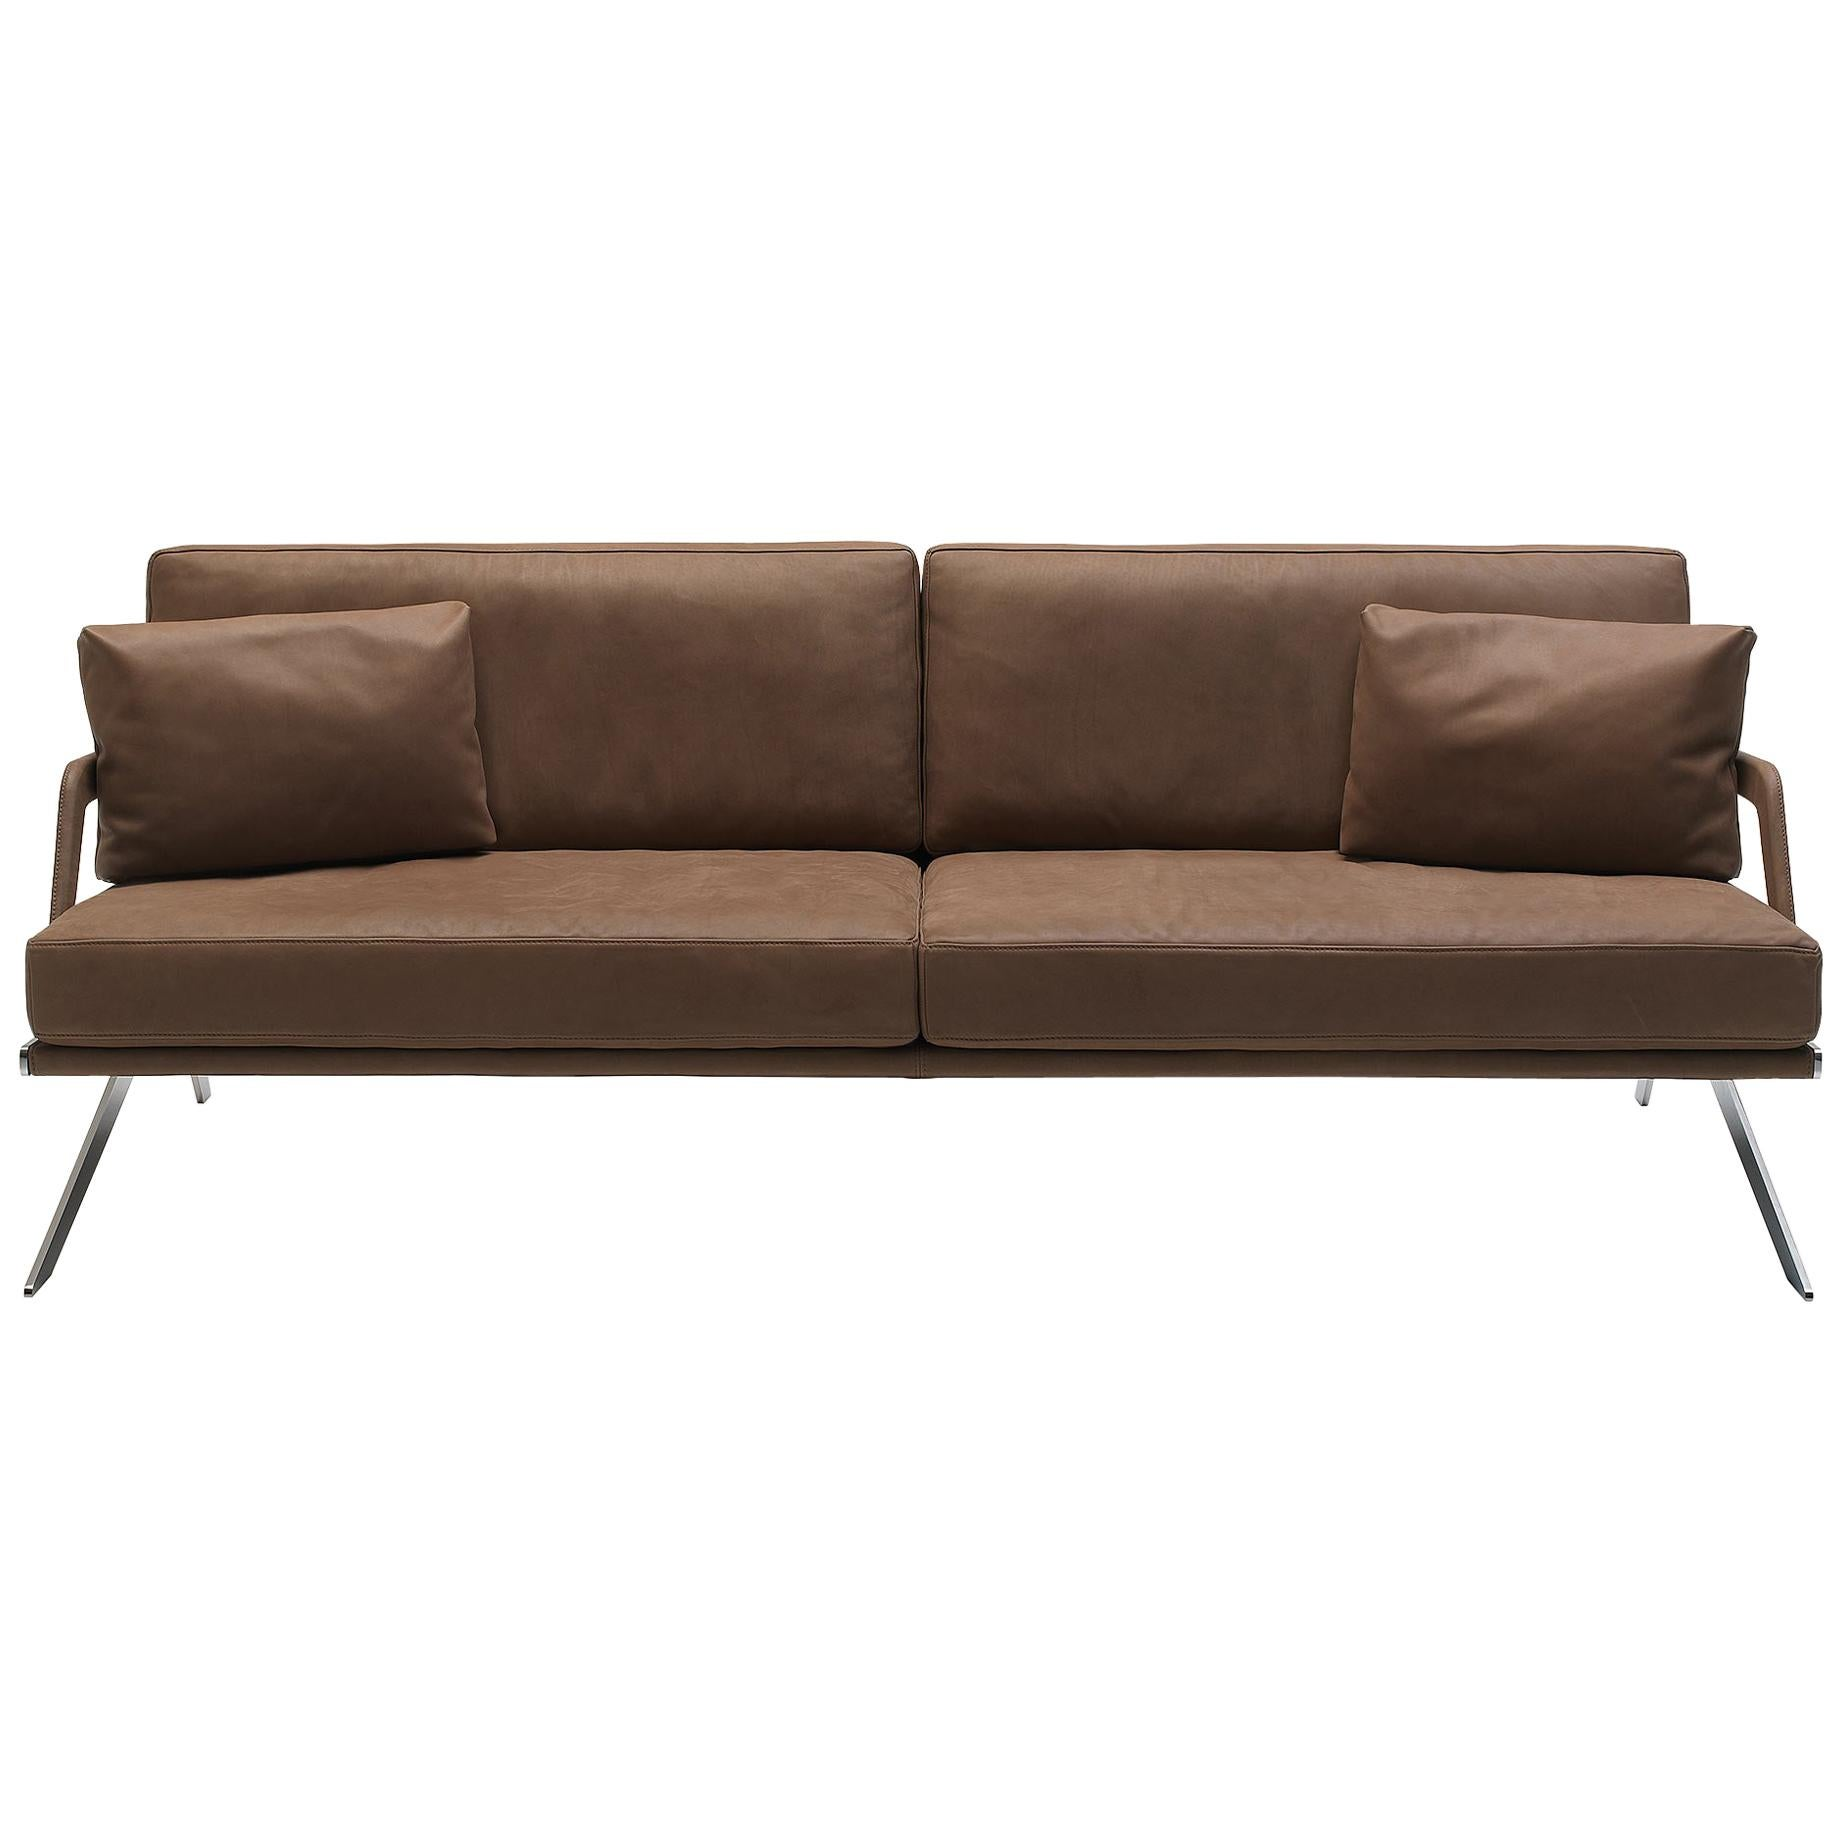 De Sede DS-60/23 Sofa in Brown Leather Upholstery by Gordon Guillaumier